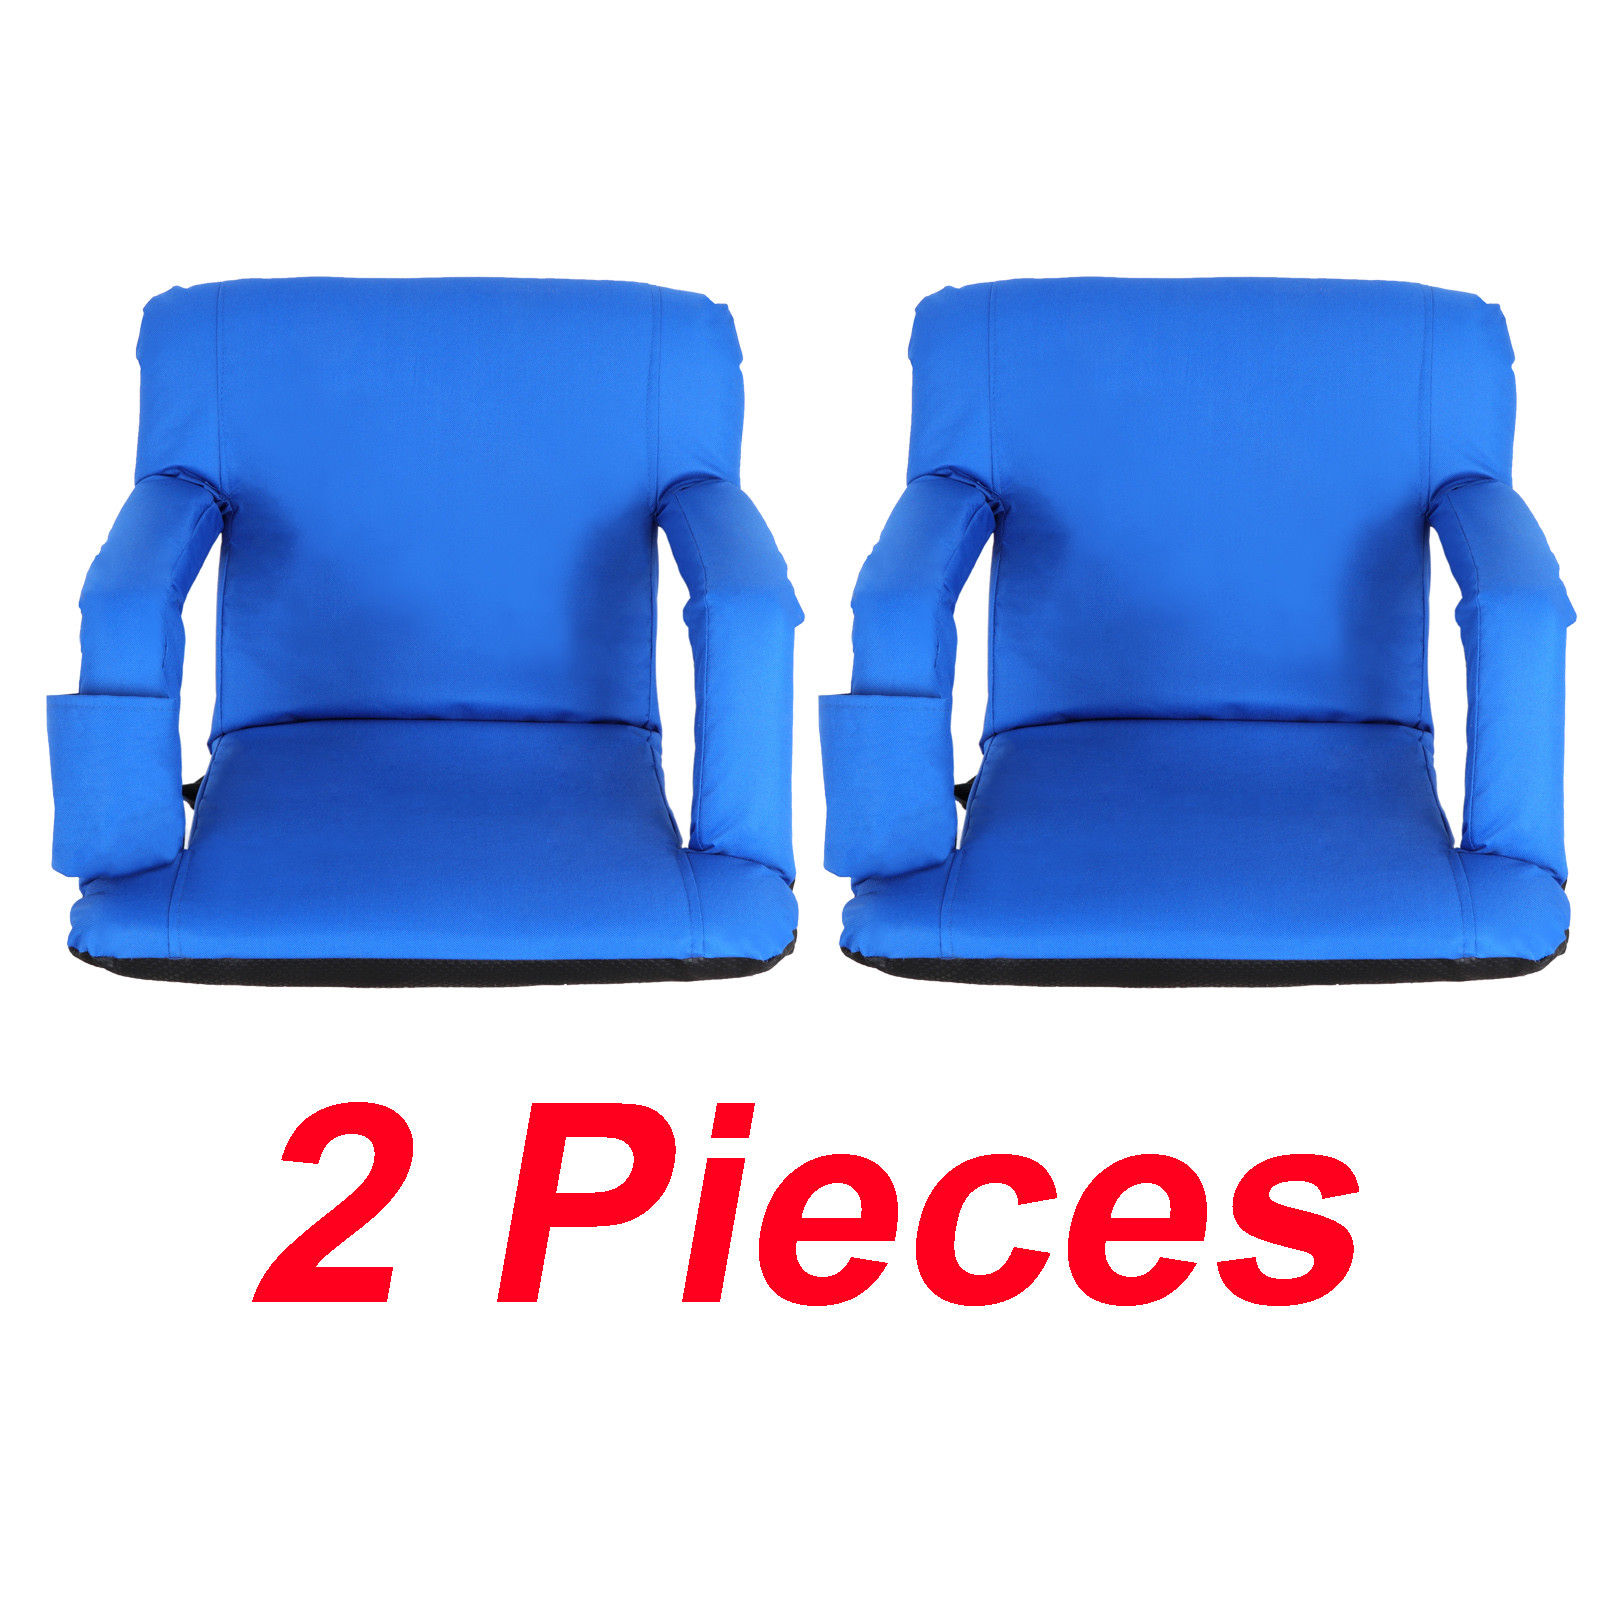 Zeny 2 Pieces Blue Wide Stadium Seat Chair Bleachers Benches 19.5  (L) x  sc 1 st  Walmart & Stadium Chairs